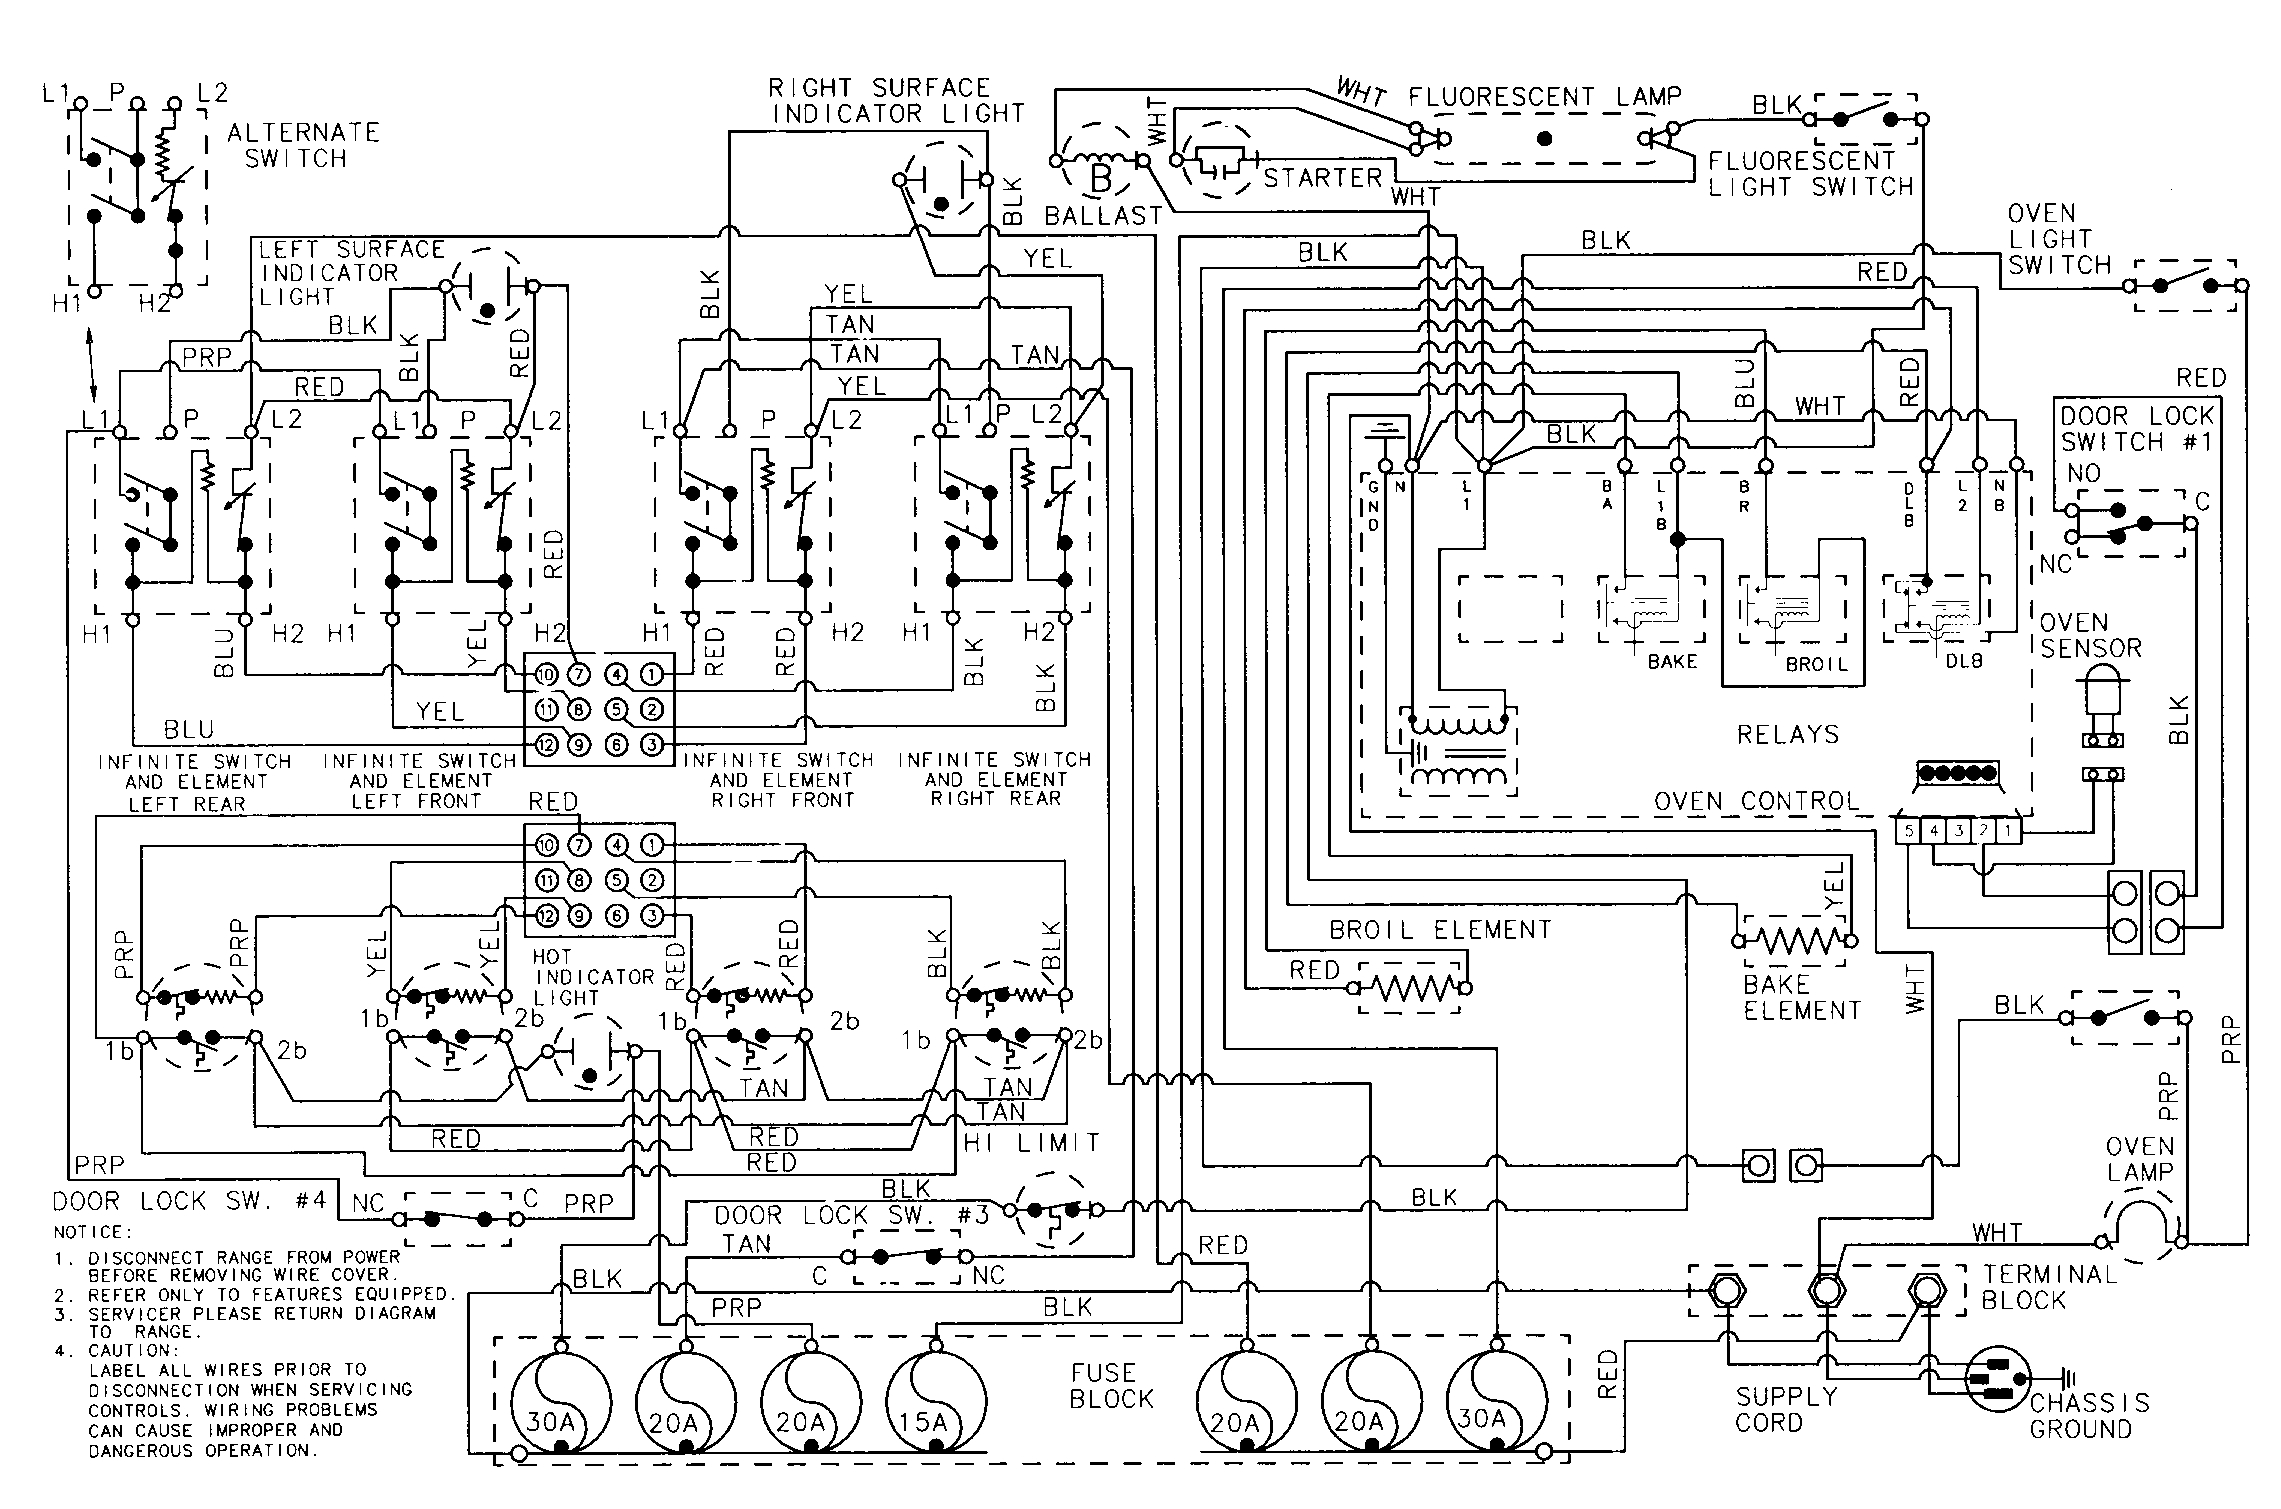 Maytag Stove Wiring Diagram - Great Installation Of Wiring Diagram • - Maytag Dryer Wiring Diagram